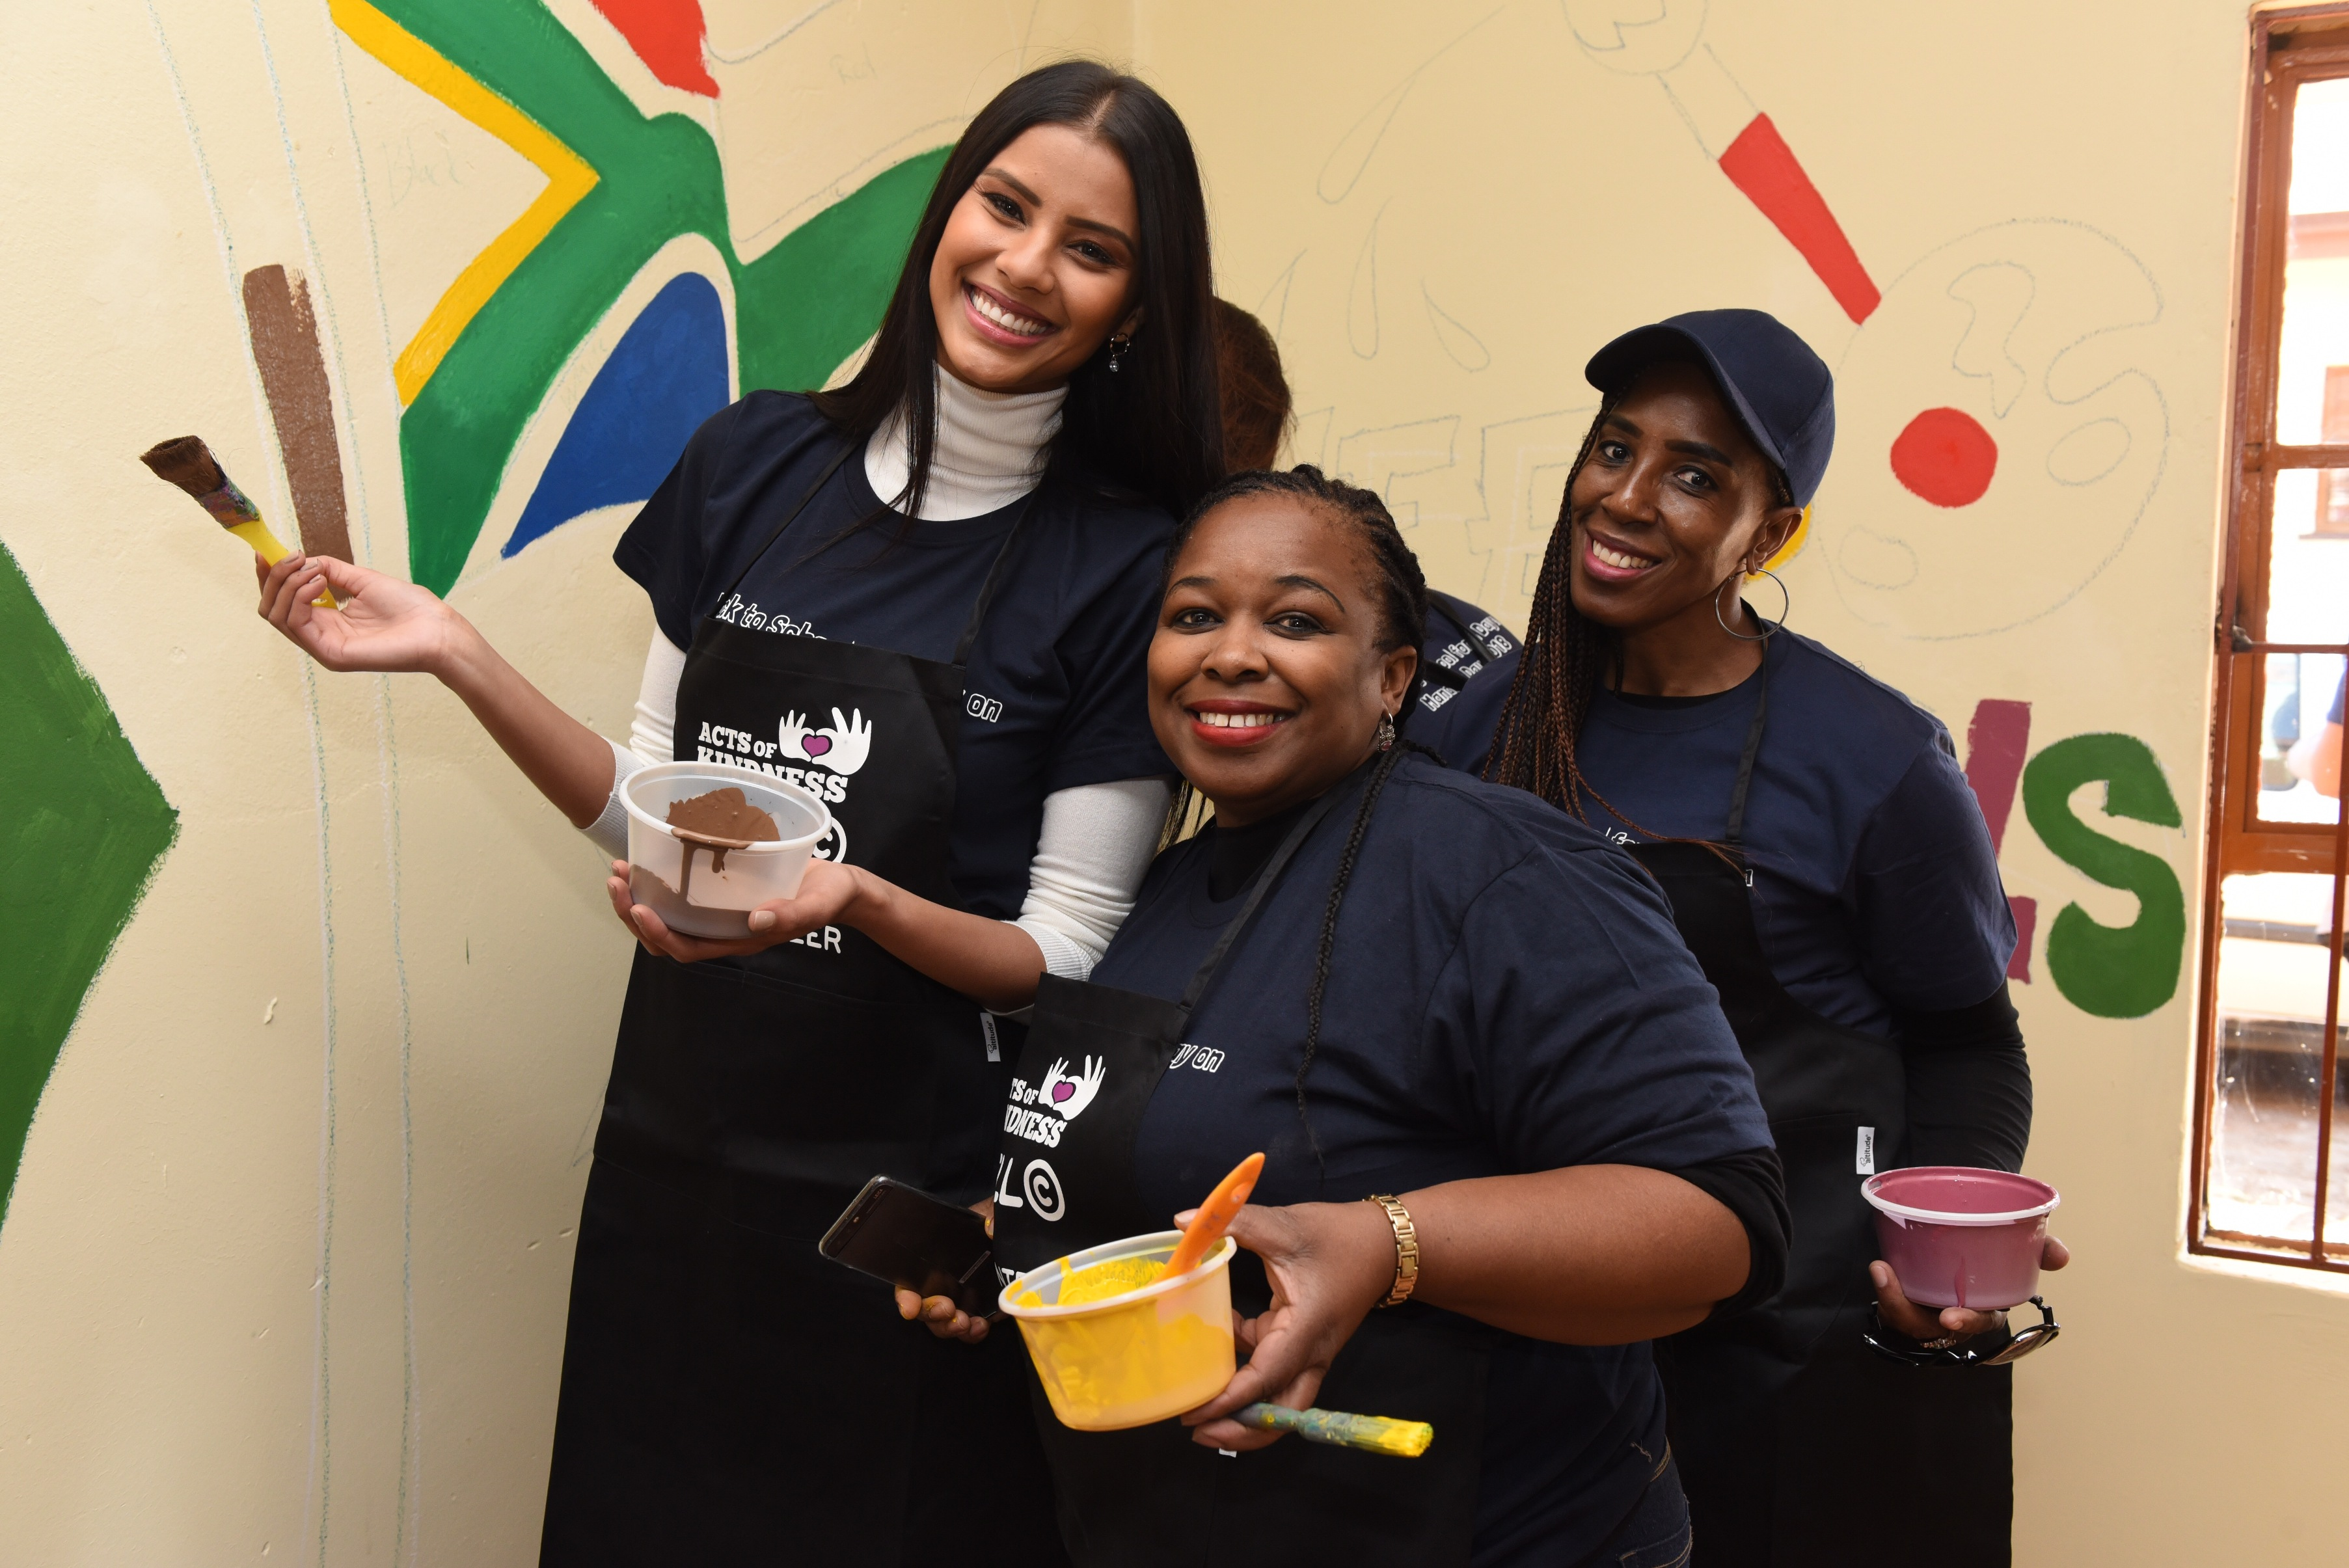 Miss_South_Africa_and_Cell_C_employee_volunteers_Octavia_Morapeli_and_Nthabiseng_Lehola